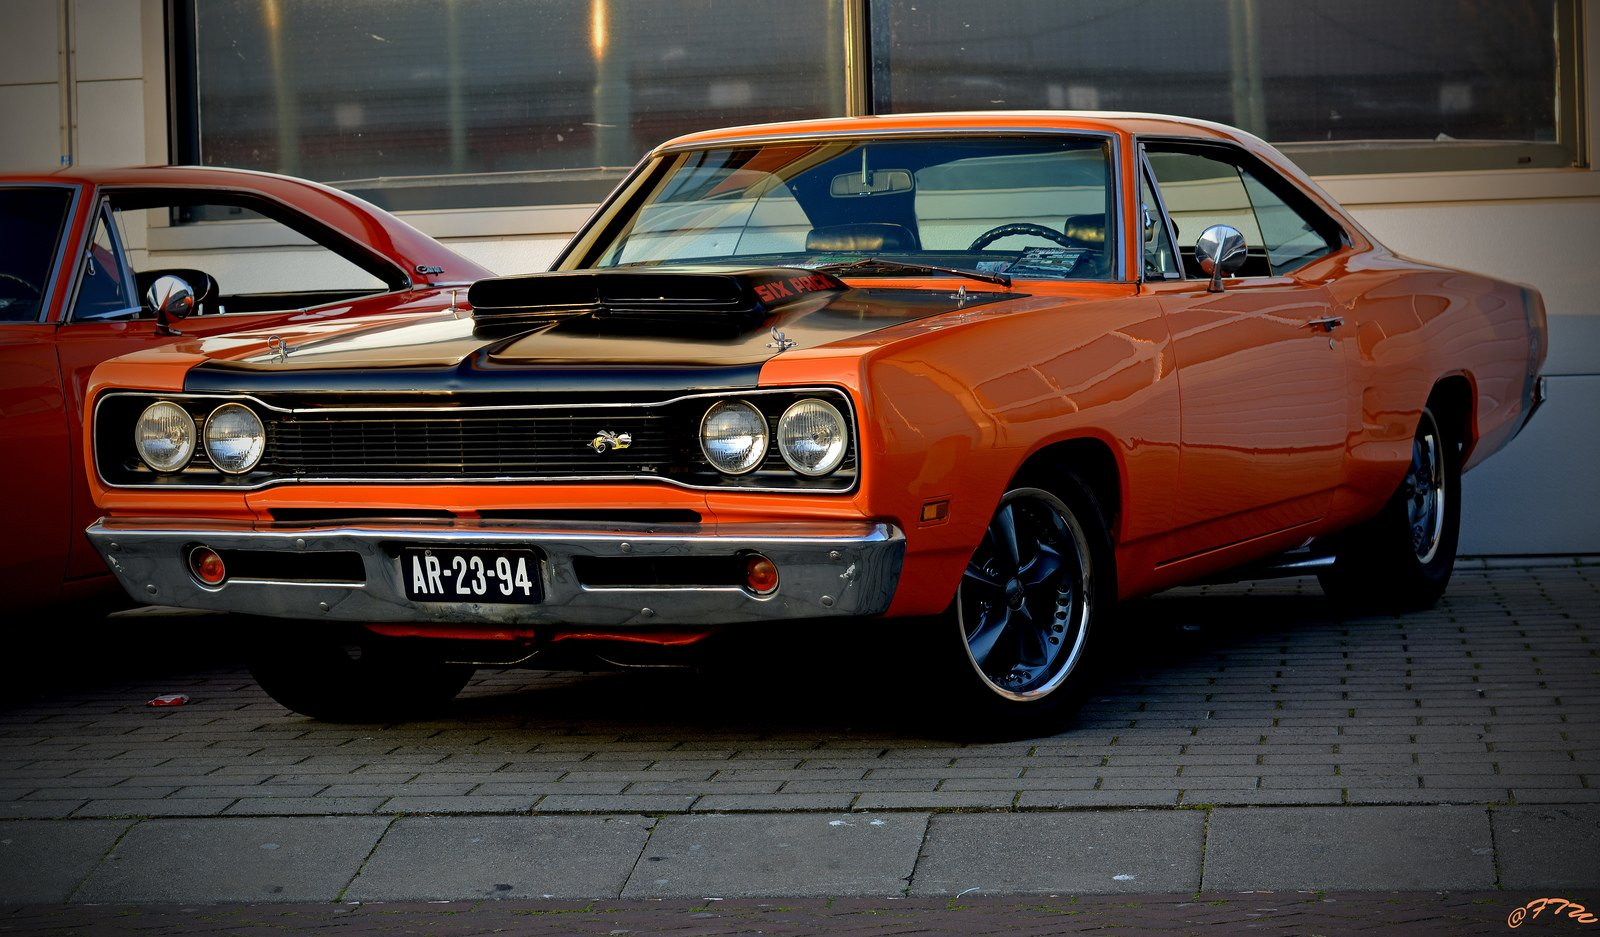 Muscle Car Wallpaper Pack Ownload 1969 1970 Dodge Coronet Super Bee Six Pack 440 Muscle Cars